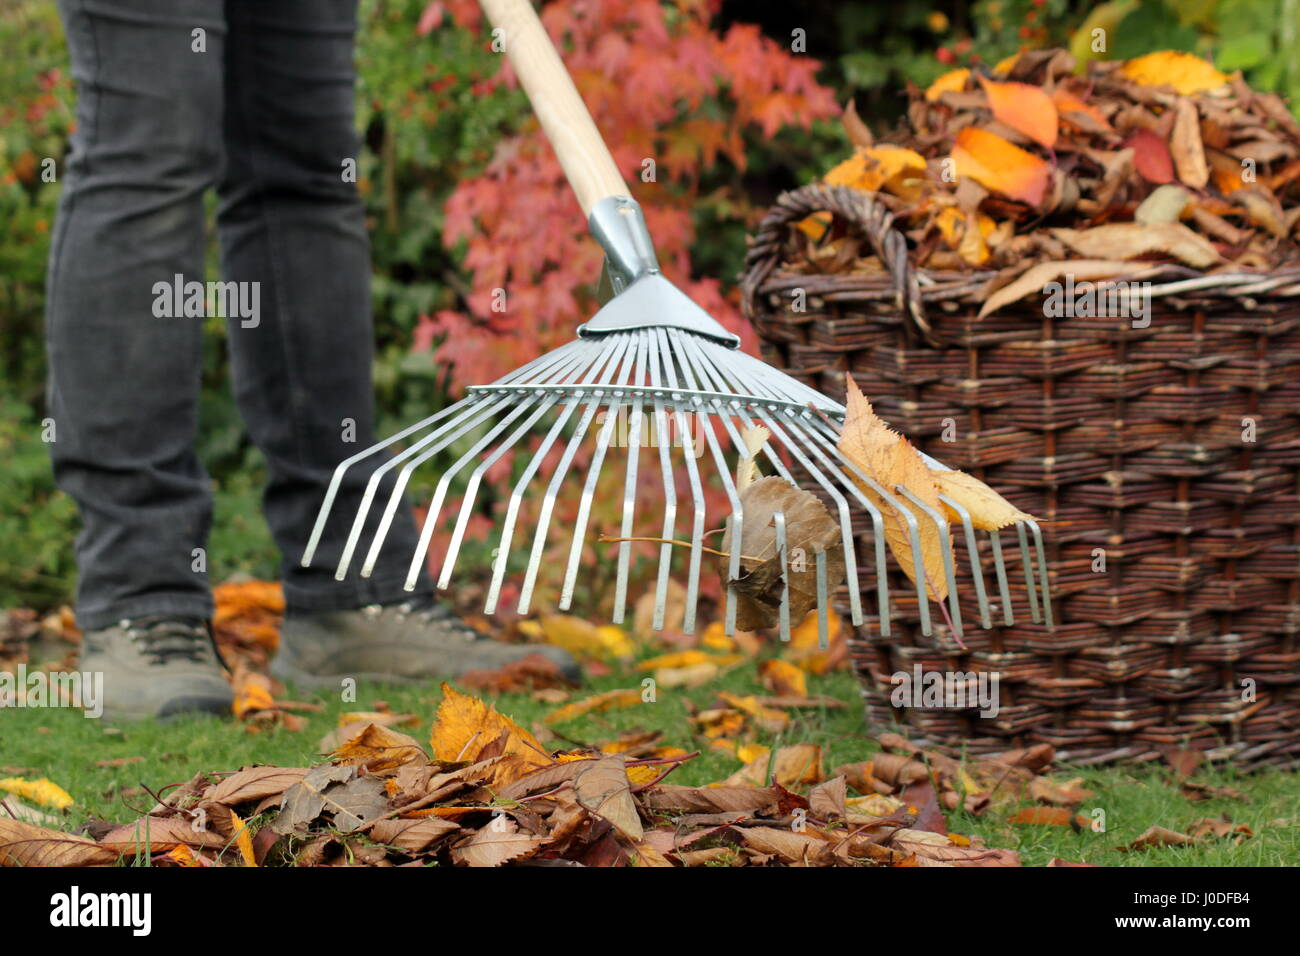 A female gardener rakes up fallen cherry tree leaves (prunus) into a woven basket from a garden lawn as part of - Stock Image